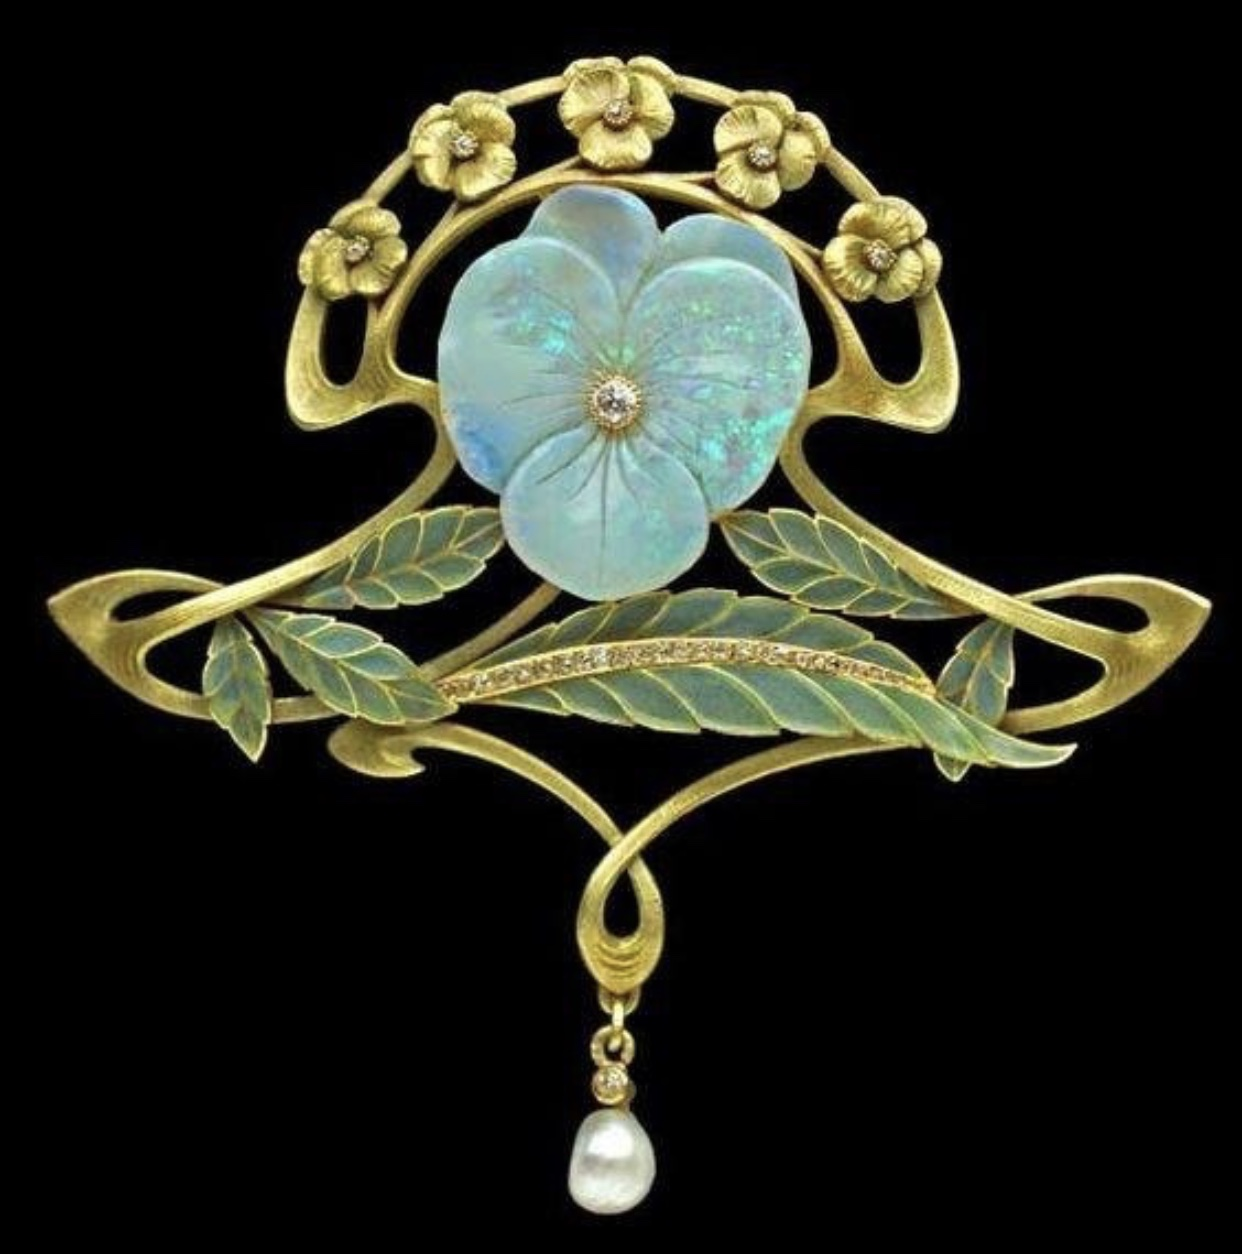 Plique-a-Jour - is an enameling technique in which transparent enamel is fired in cloisonné, so that light will show through. It's the stained glass window of jewelry.